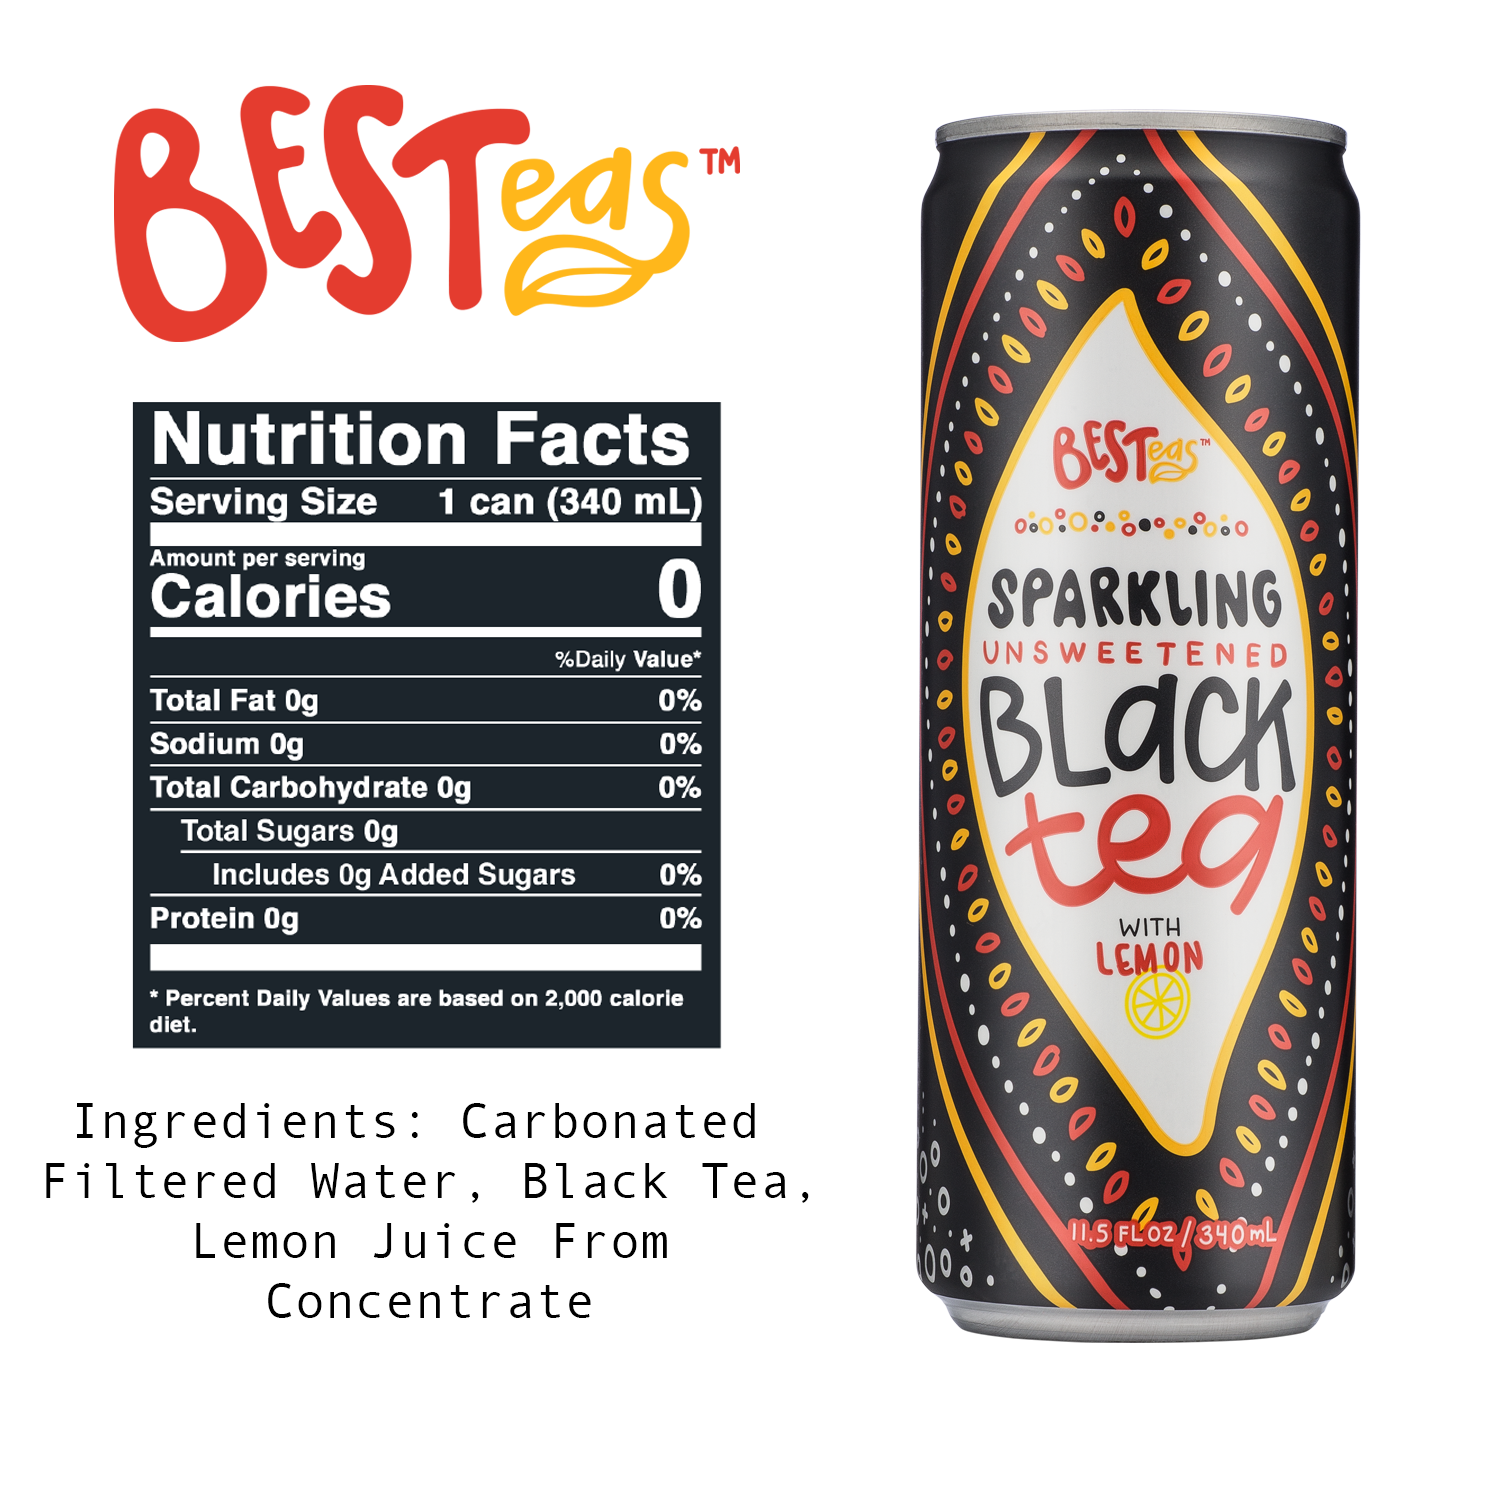 BESTeas Sparkling Unsweetened Black Tea + Lemon 24 Pack (11.5 fl oz cans)